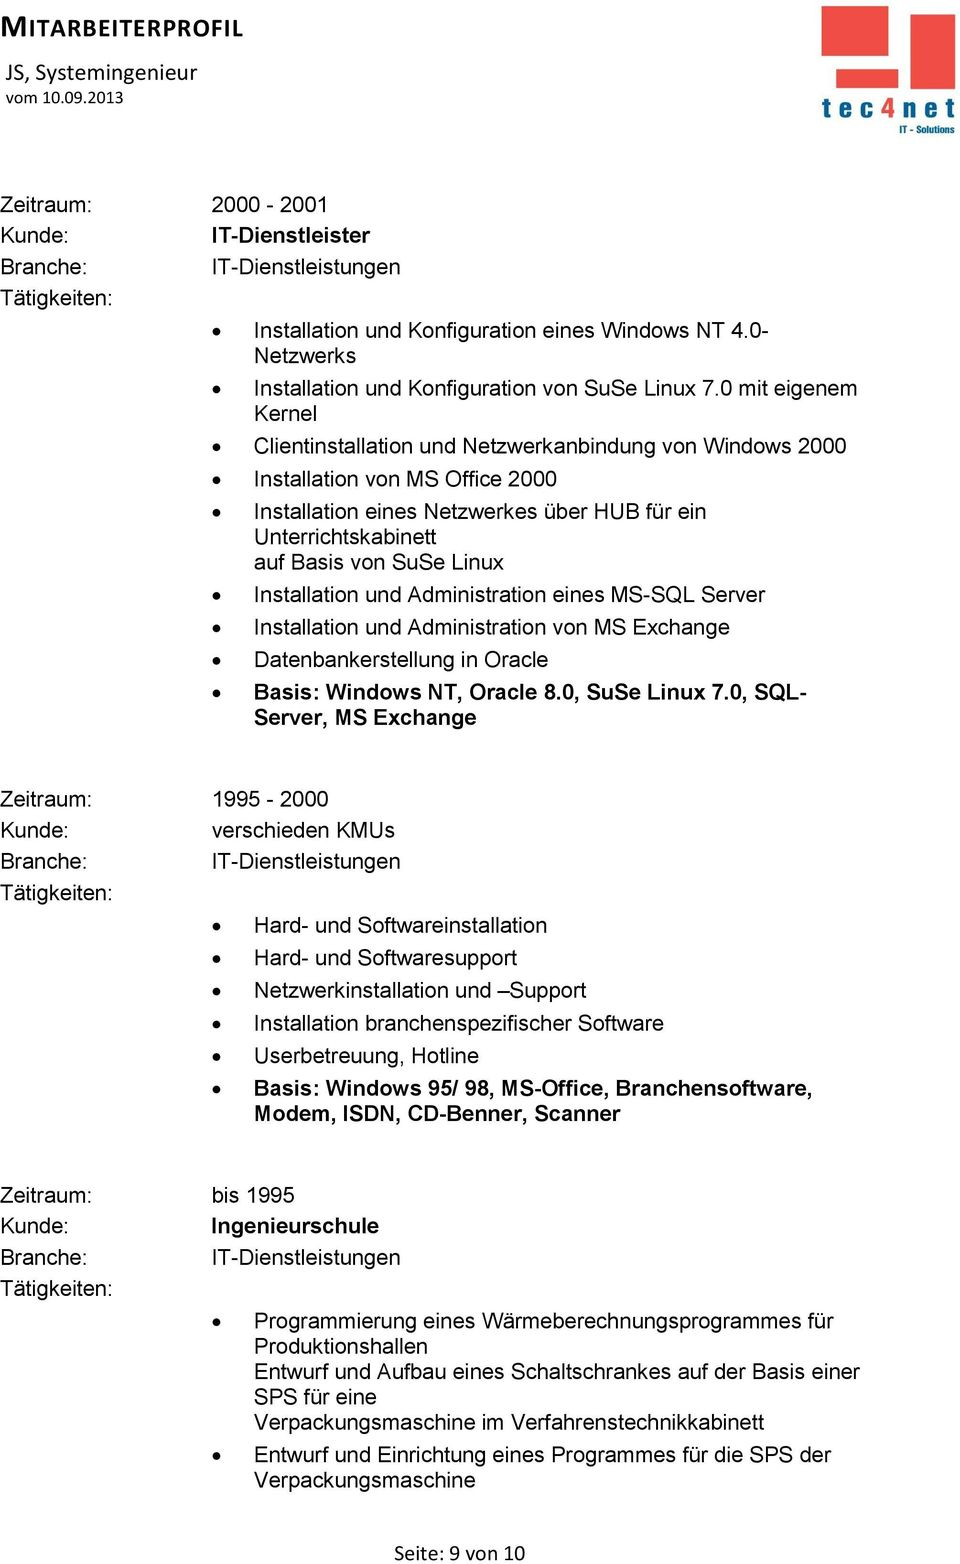 Linux Installation und Administration eines MS-SQL Server Installation und Administration von MS Exchange Datenbankerstellung in Oracle Basis: Windows NT, Oracle 8.0, SuSe Linux 7.